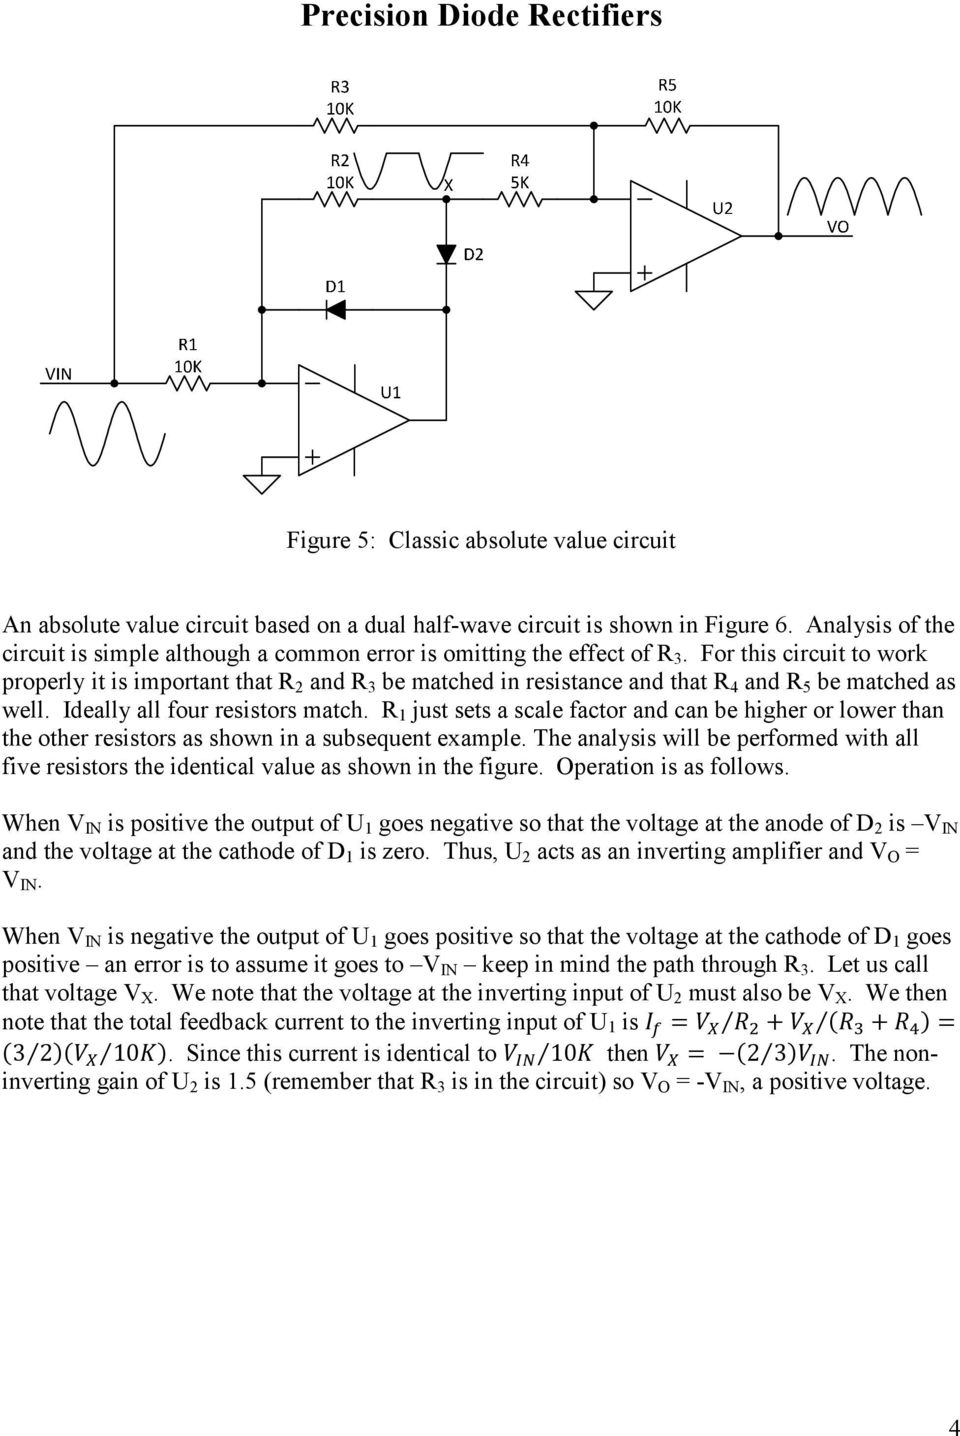 Precision Diode Rectifiers Pdf Rectifiercircuits2 For This Circuit To Work Properly It Is Important That R 2 And 3 Be